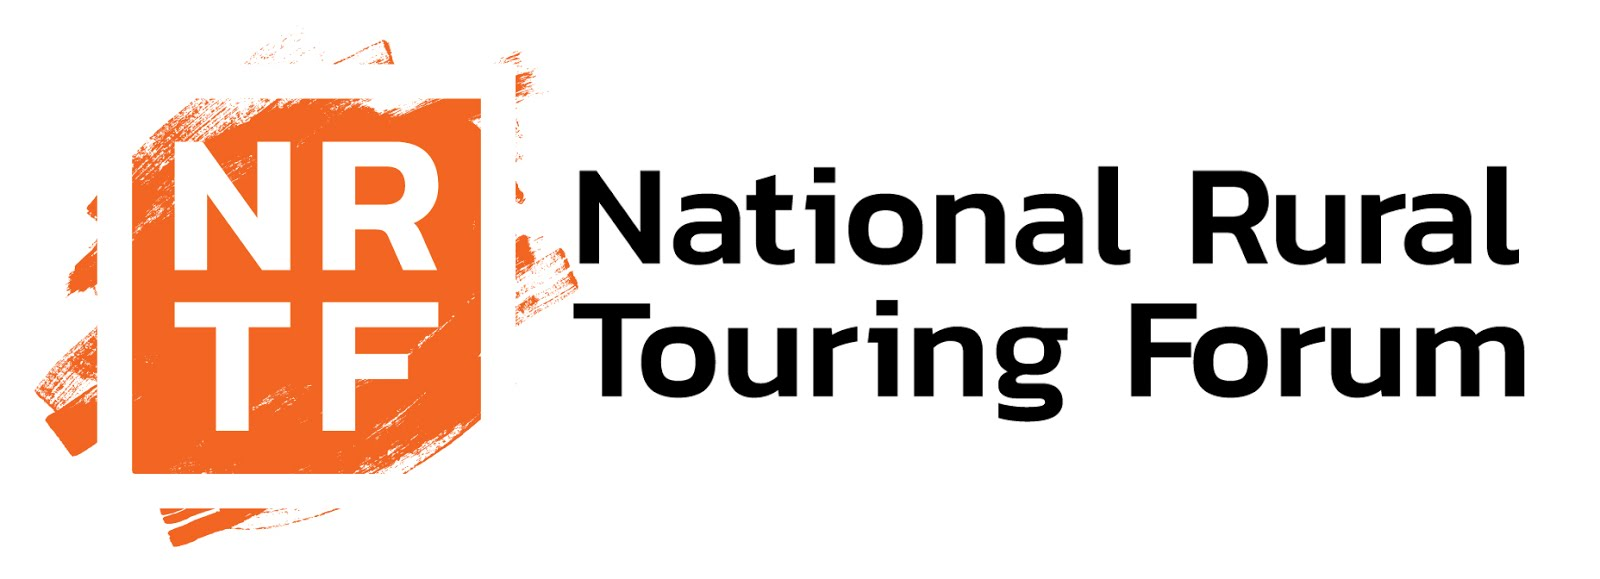 National Rural Touring Forum